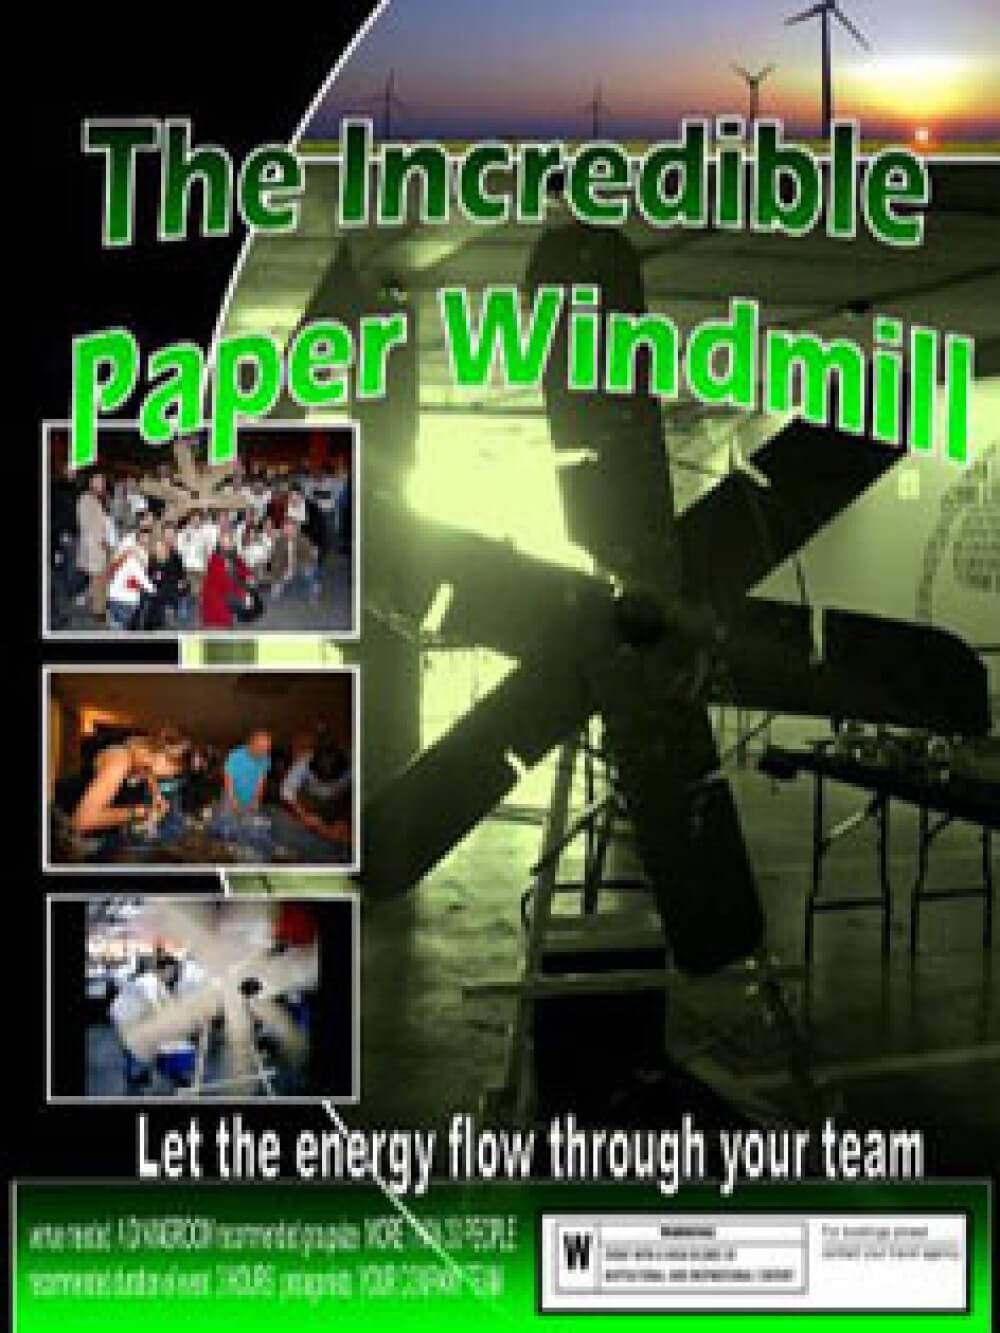 the_incredible_paper_windmill_vertical_web